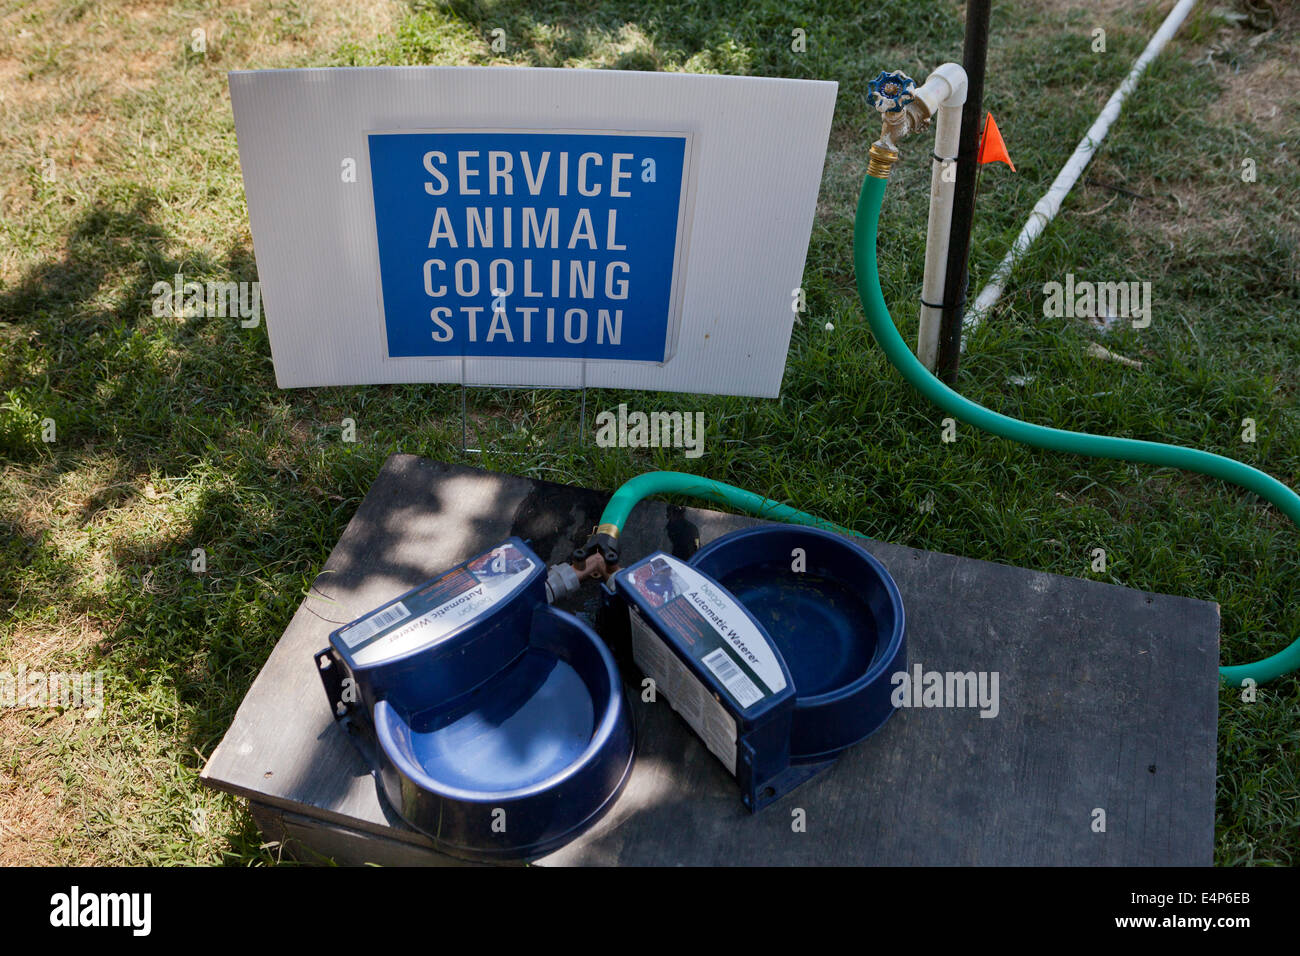 Service animal cooling station at an outdoor event - USA - Stock Image